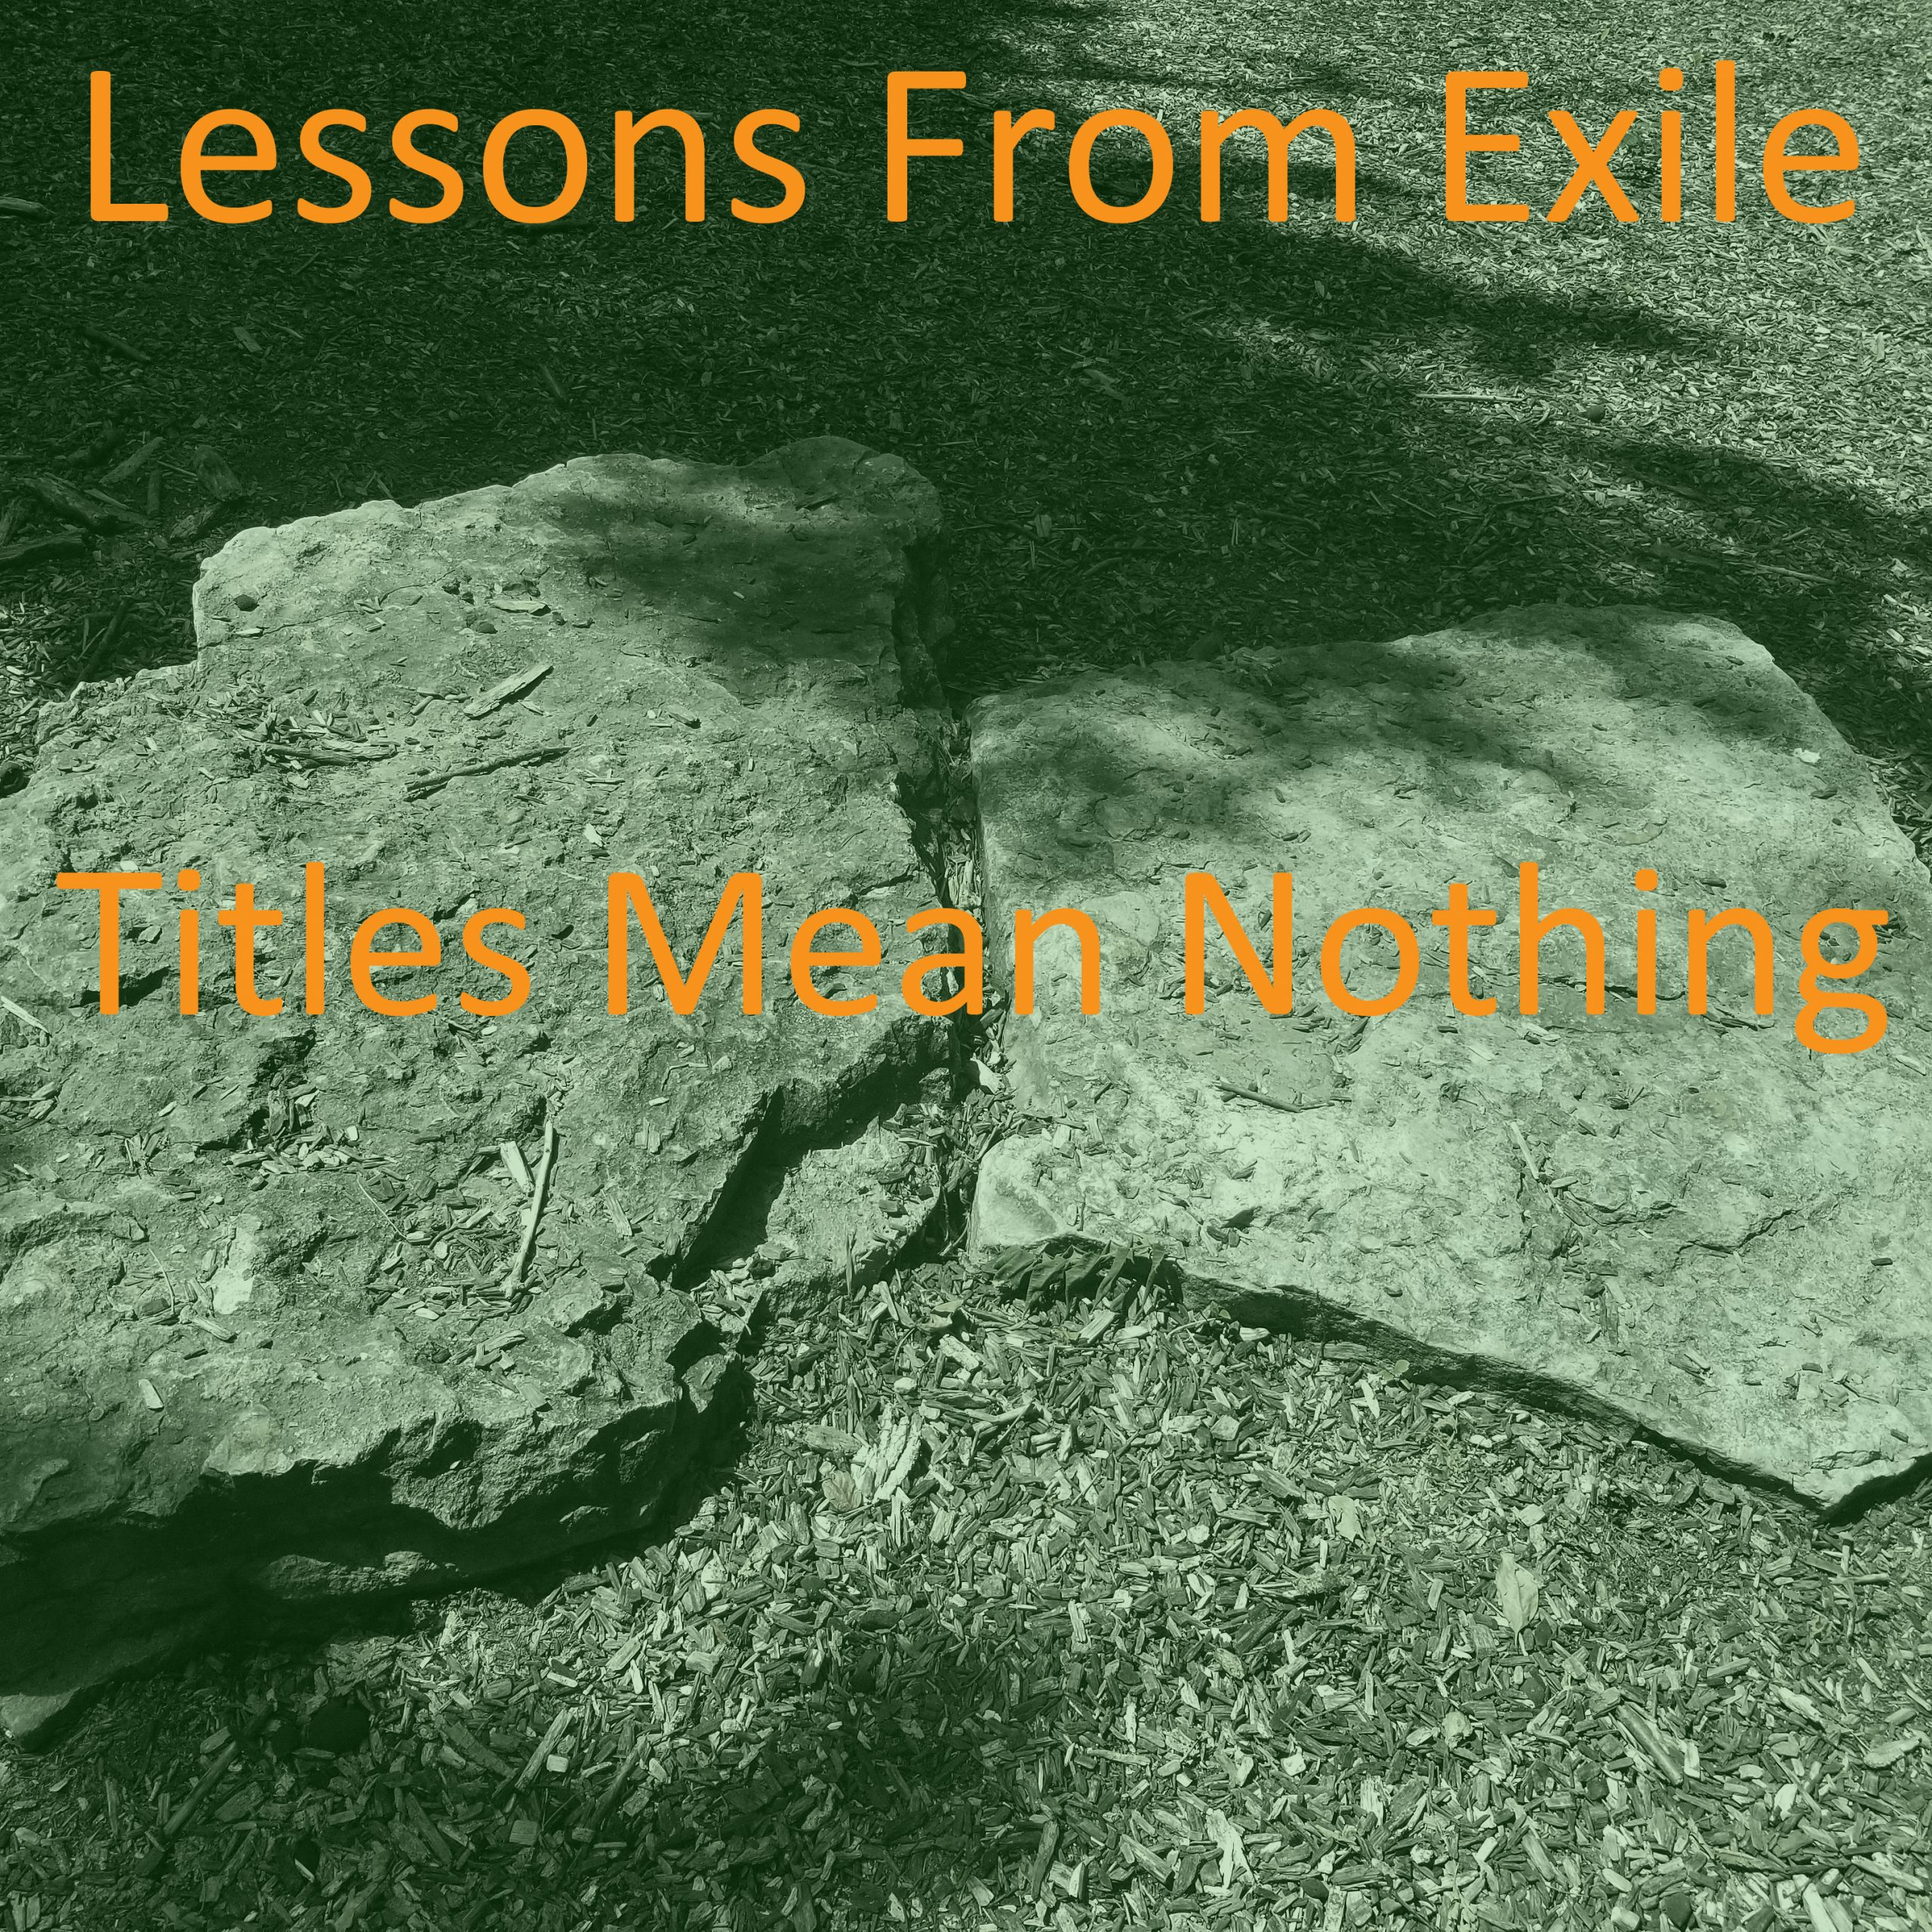 Lessons from Exile #65: Titles Mean Nothing